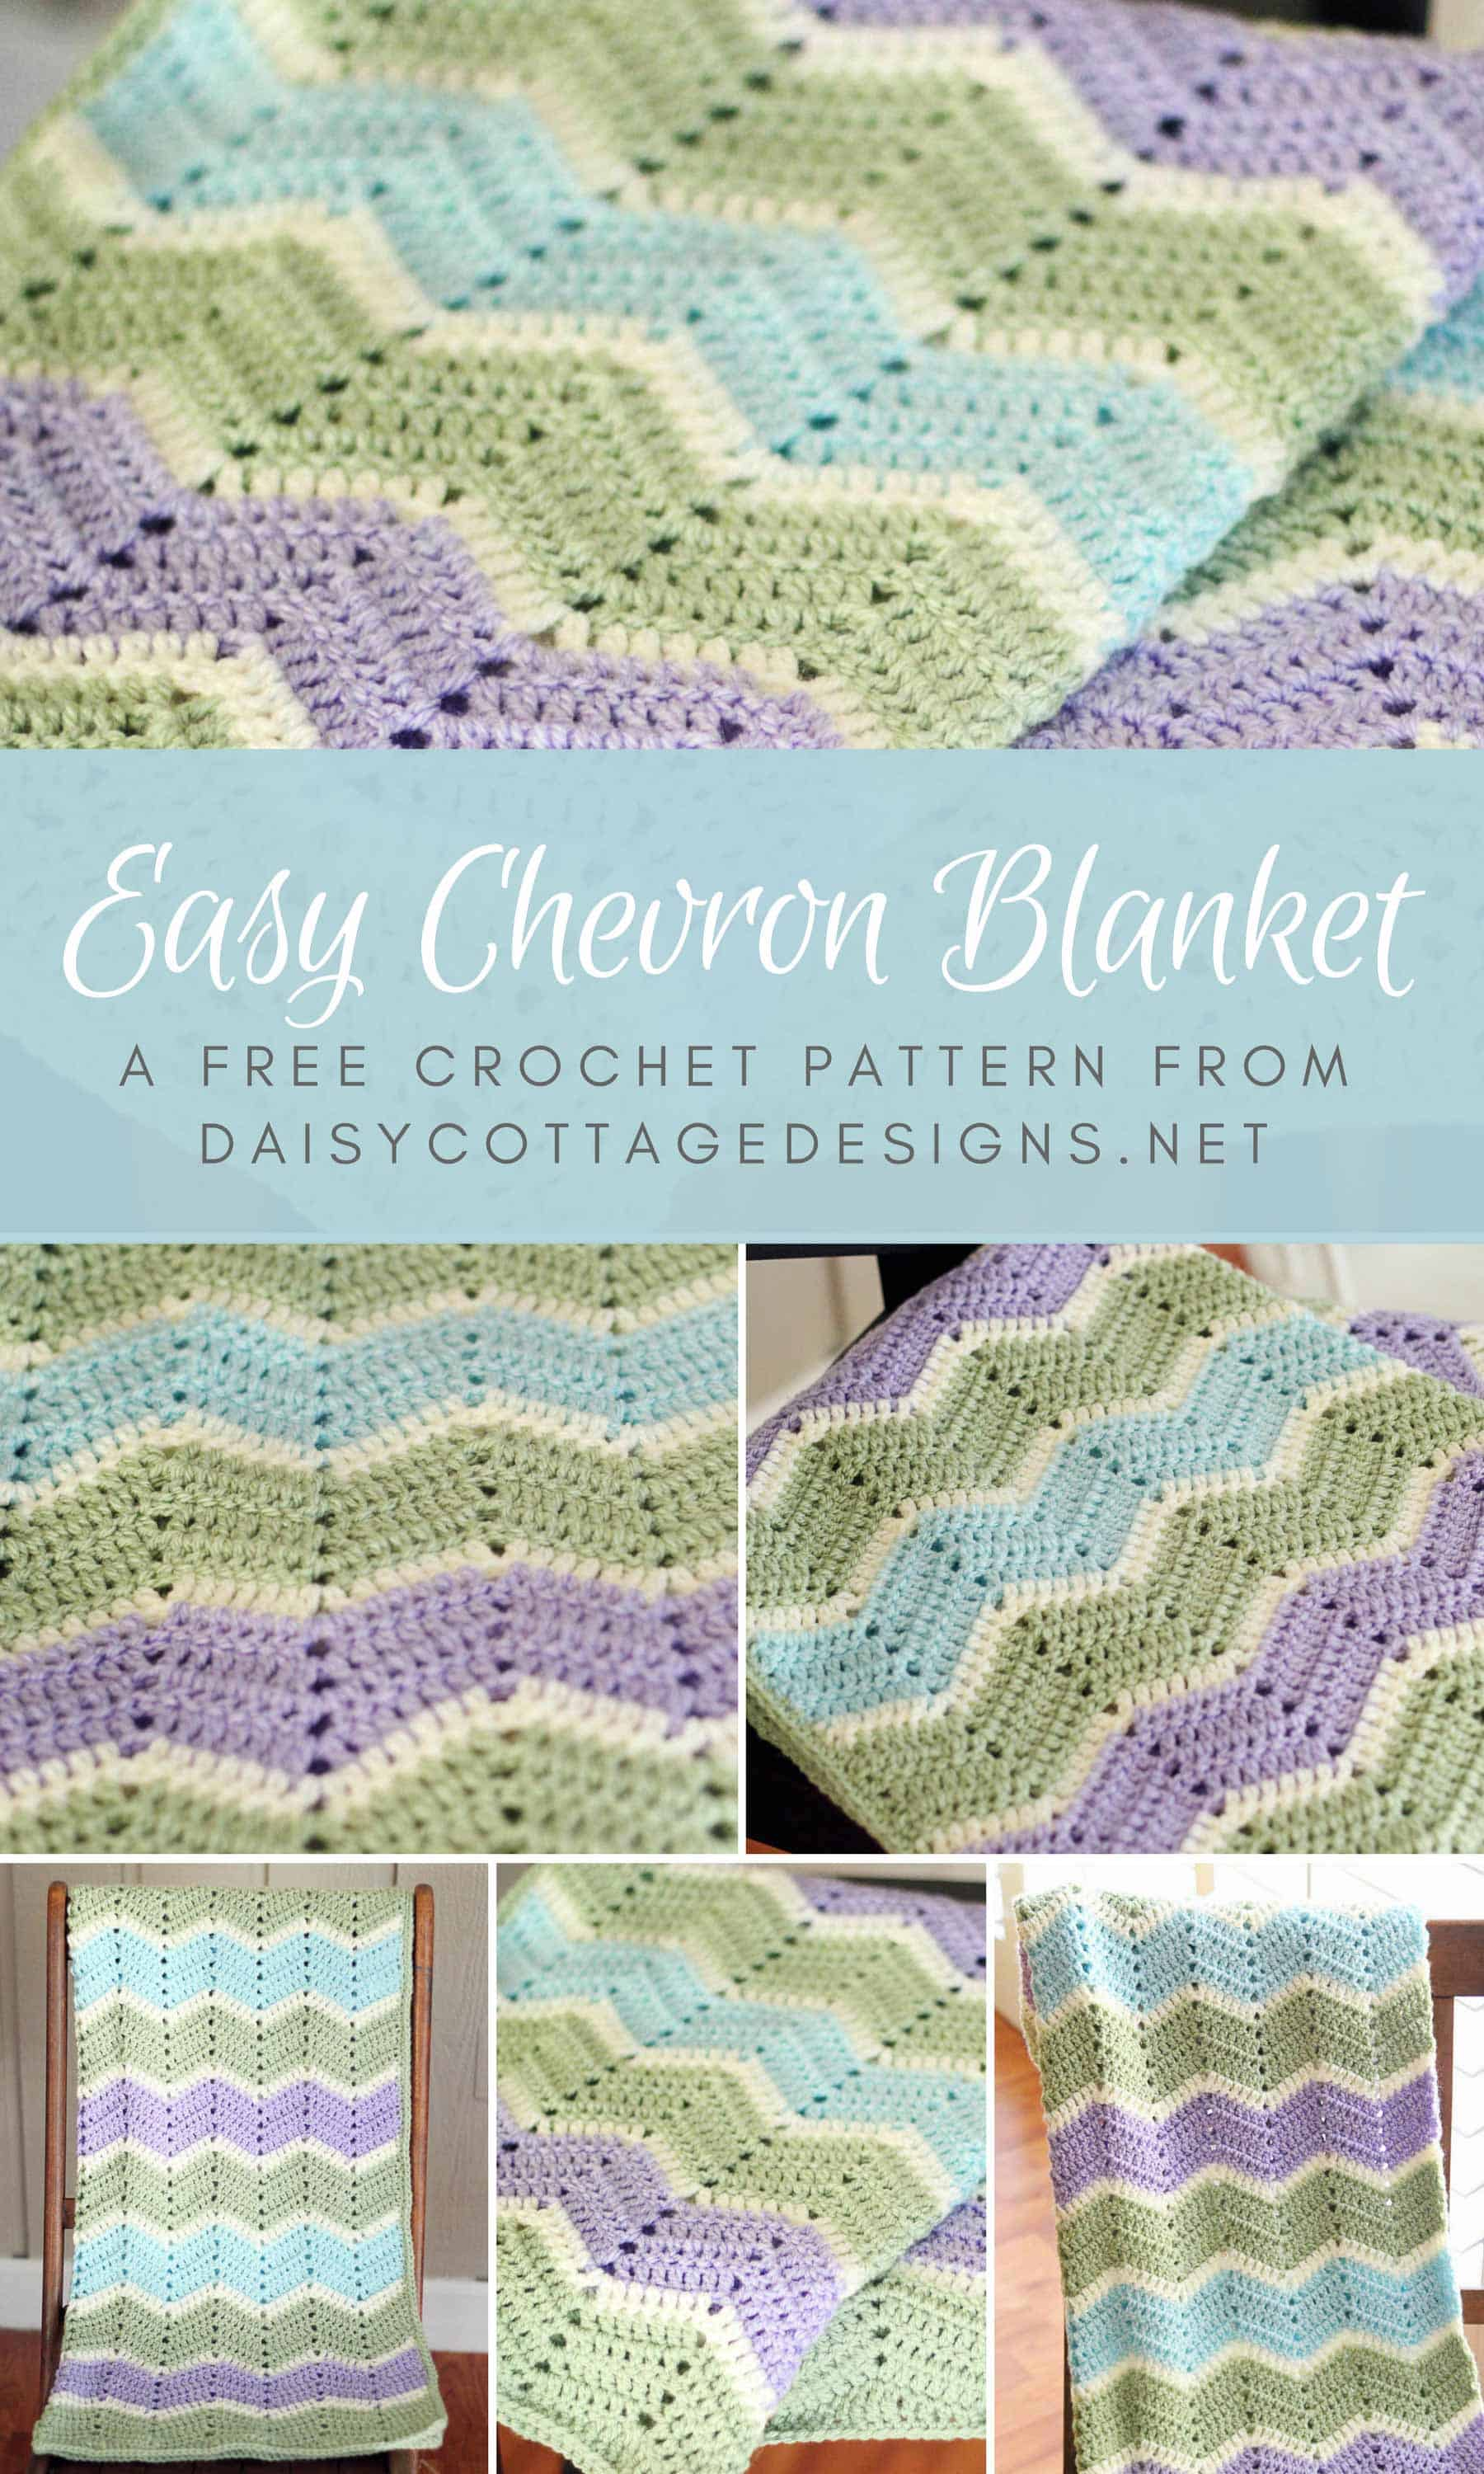 Easy Chevron Blanket Crochet Pattern Daisy Cottage Designs